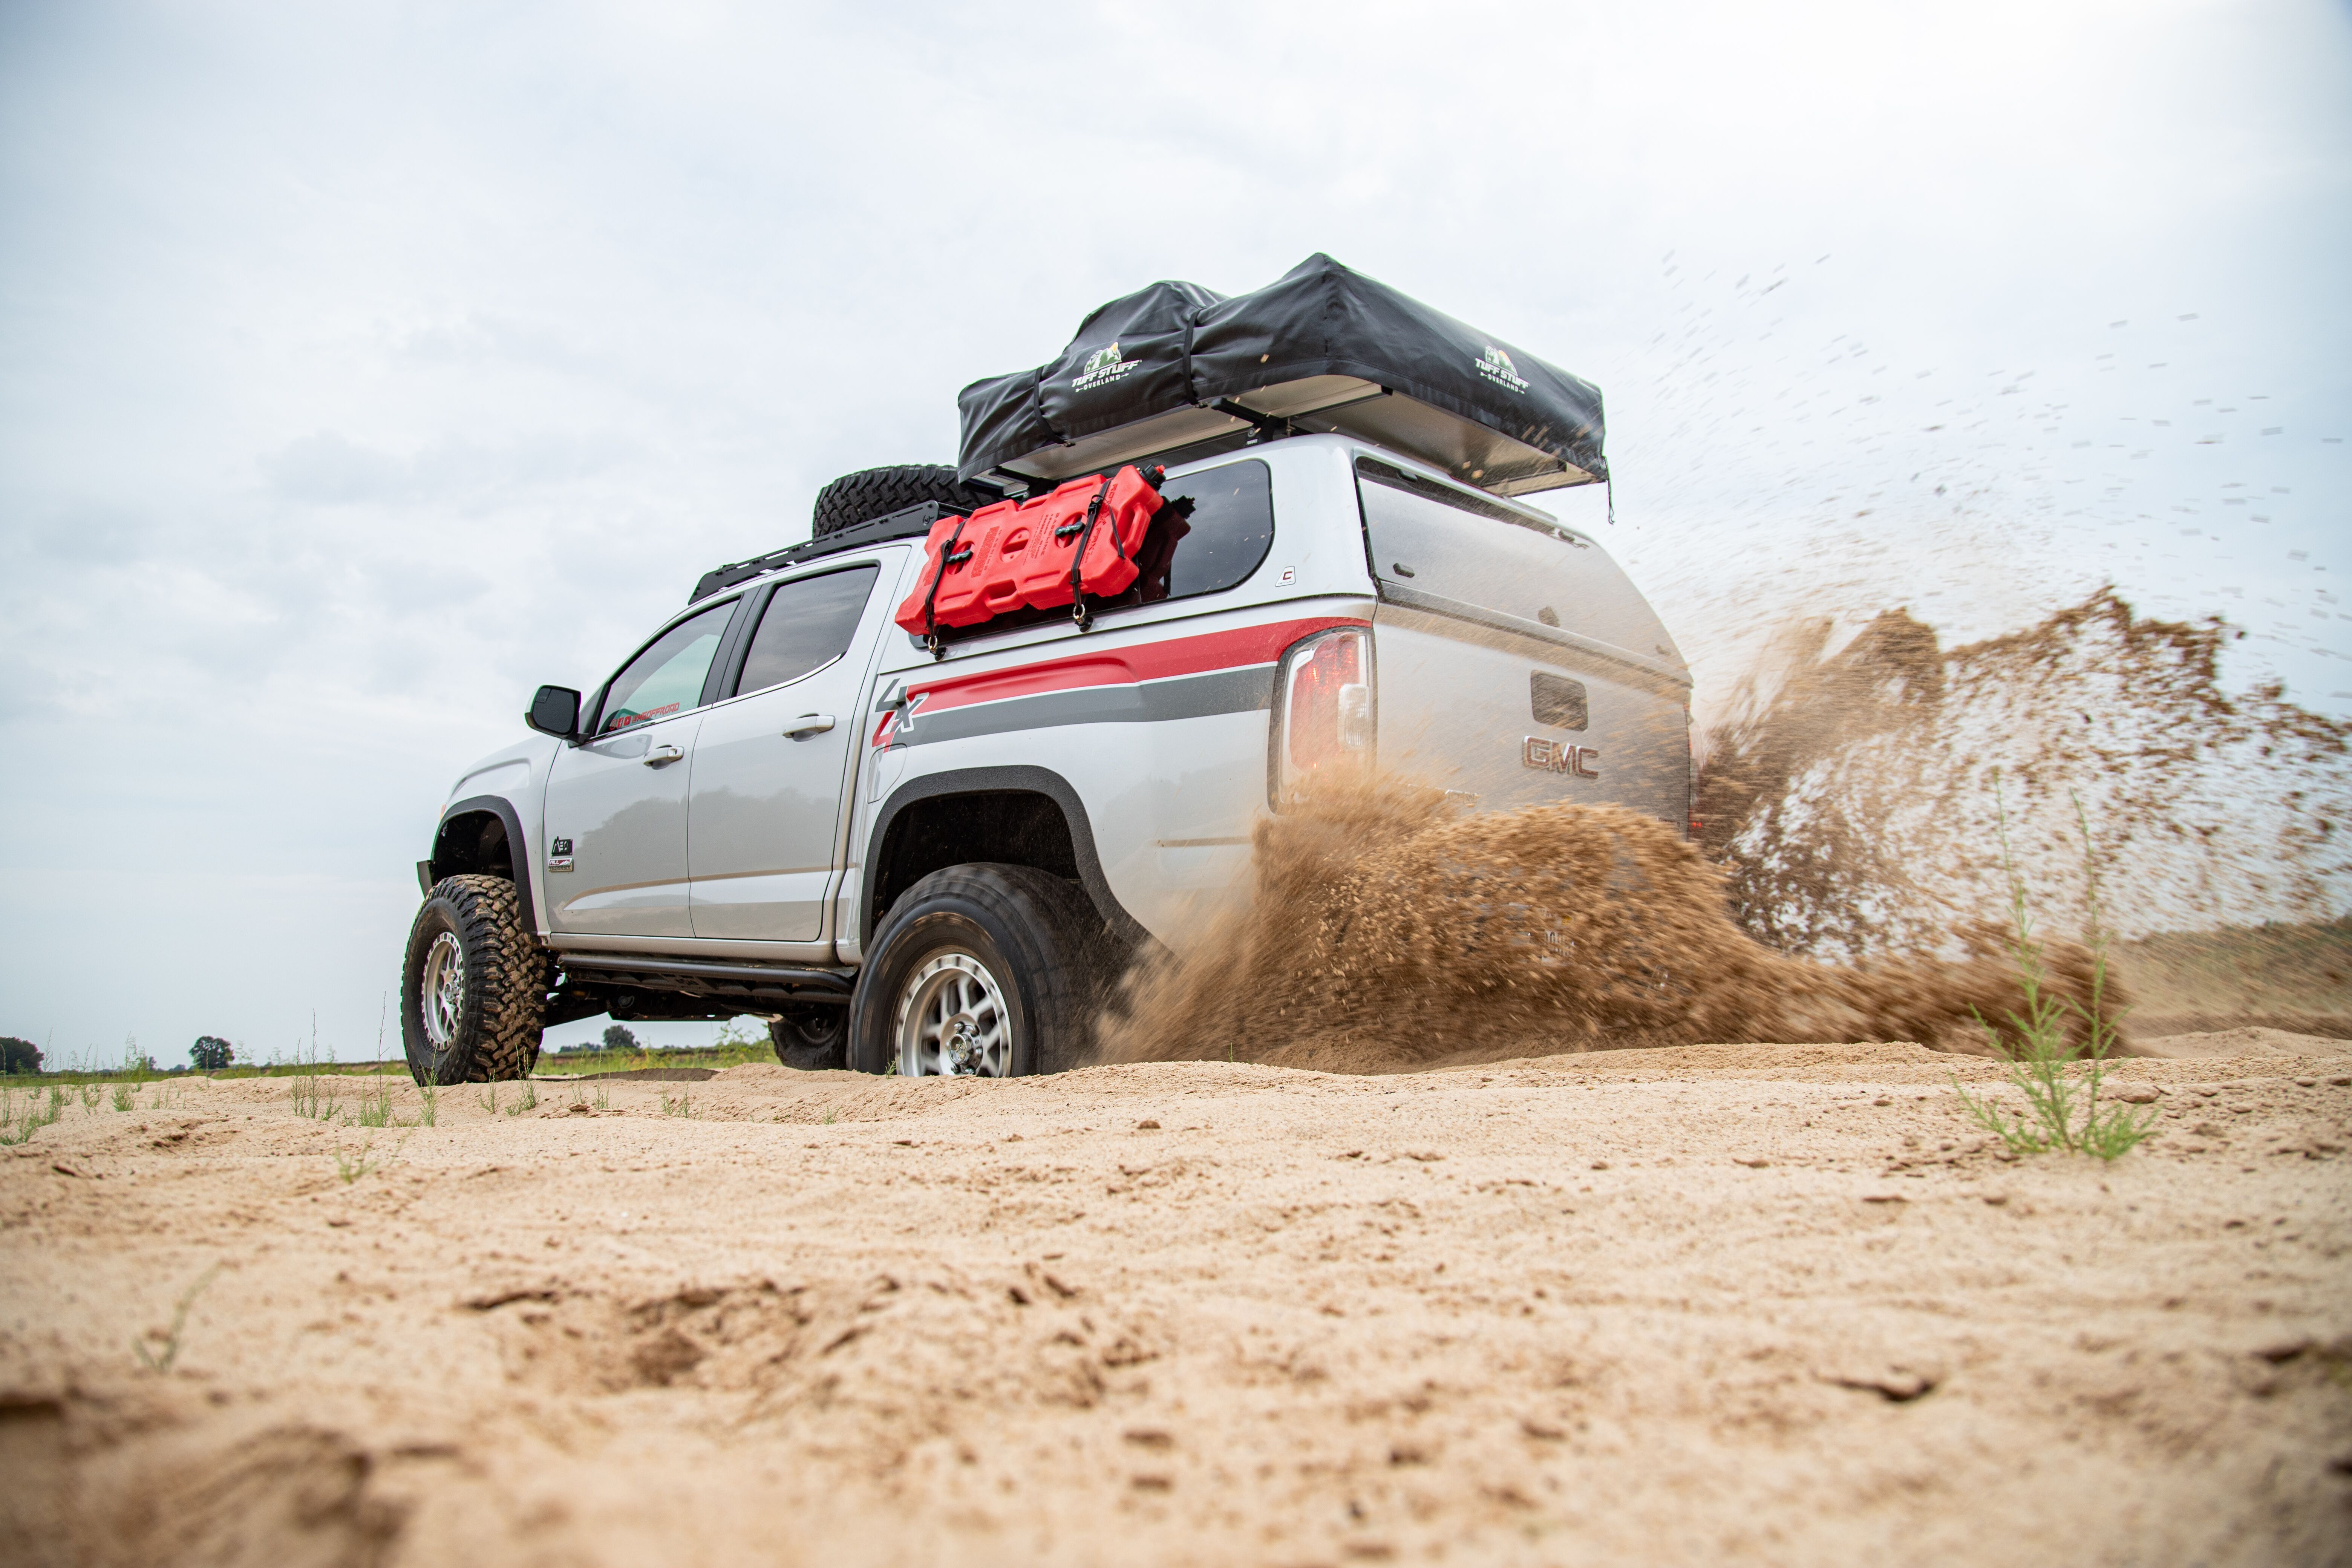 Pin by MAXIMUM ELEVATION OFFROAD on OVERLAND TRIP 2019